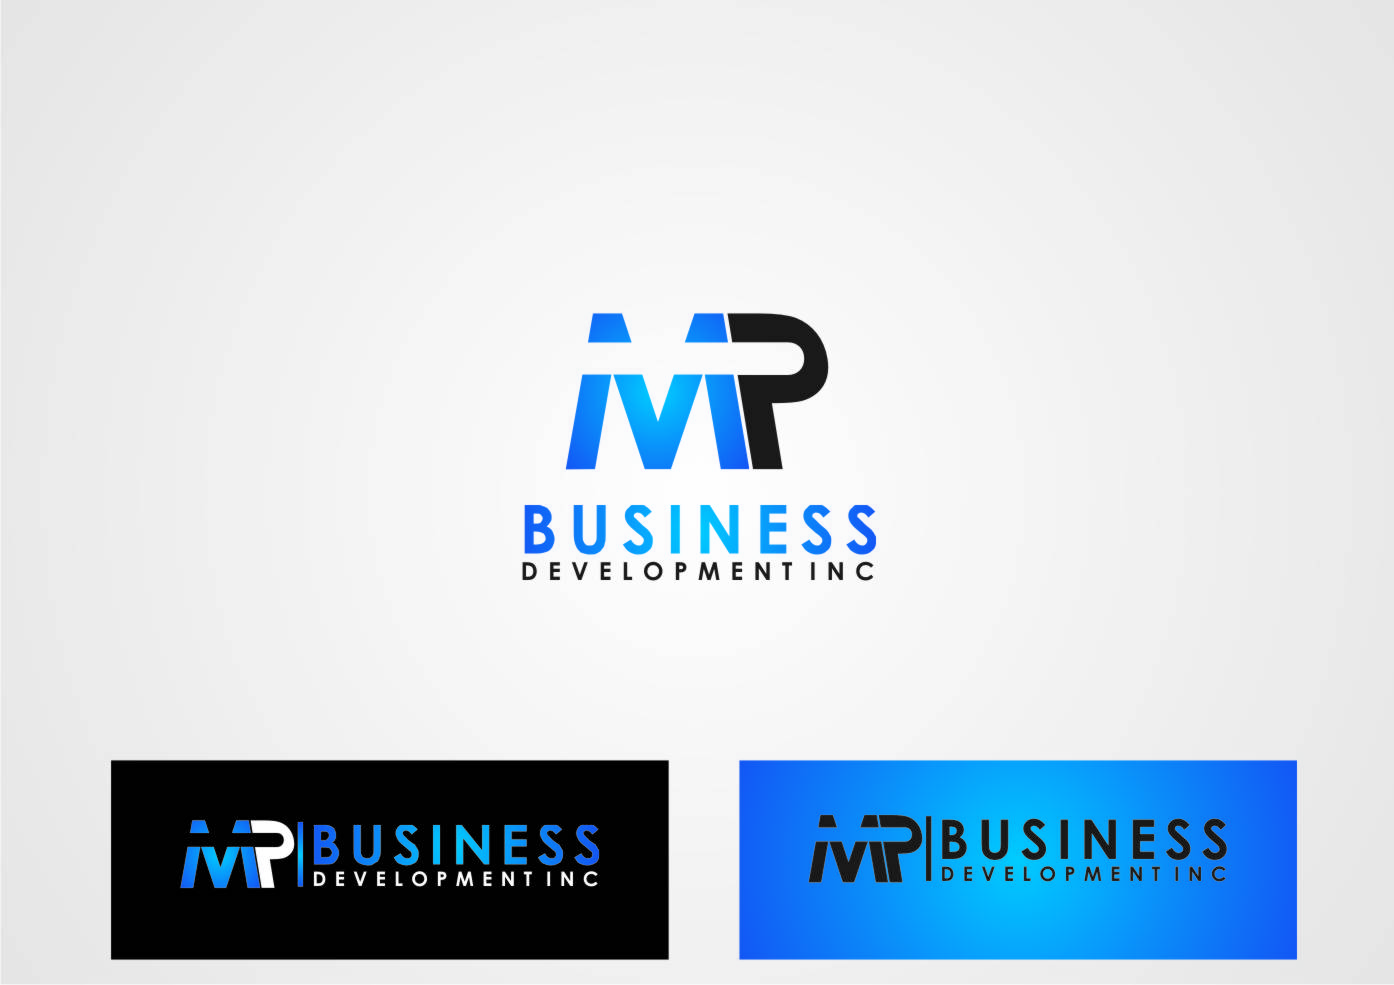 Logo Design by yanxsant - Entry No. 105 in the Logo Design Contest MP Business Development Inc. Logo Design.